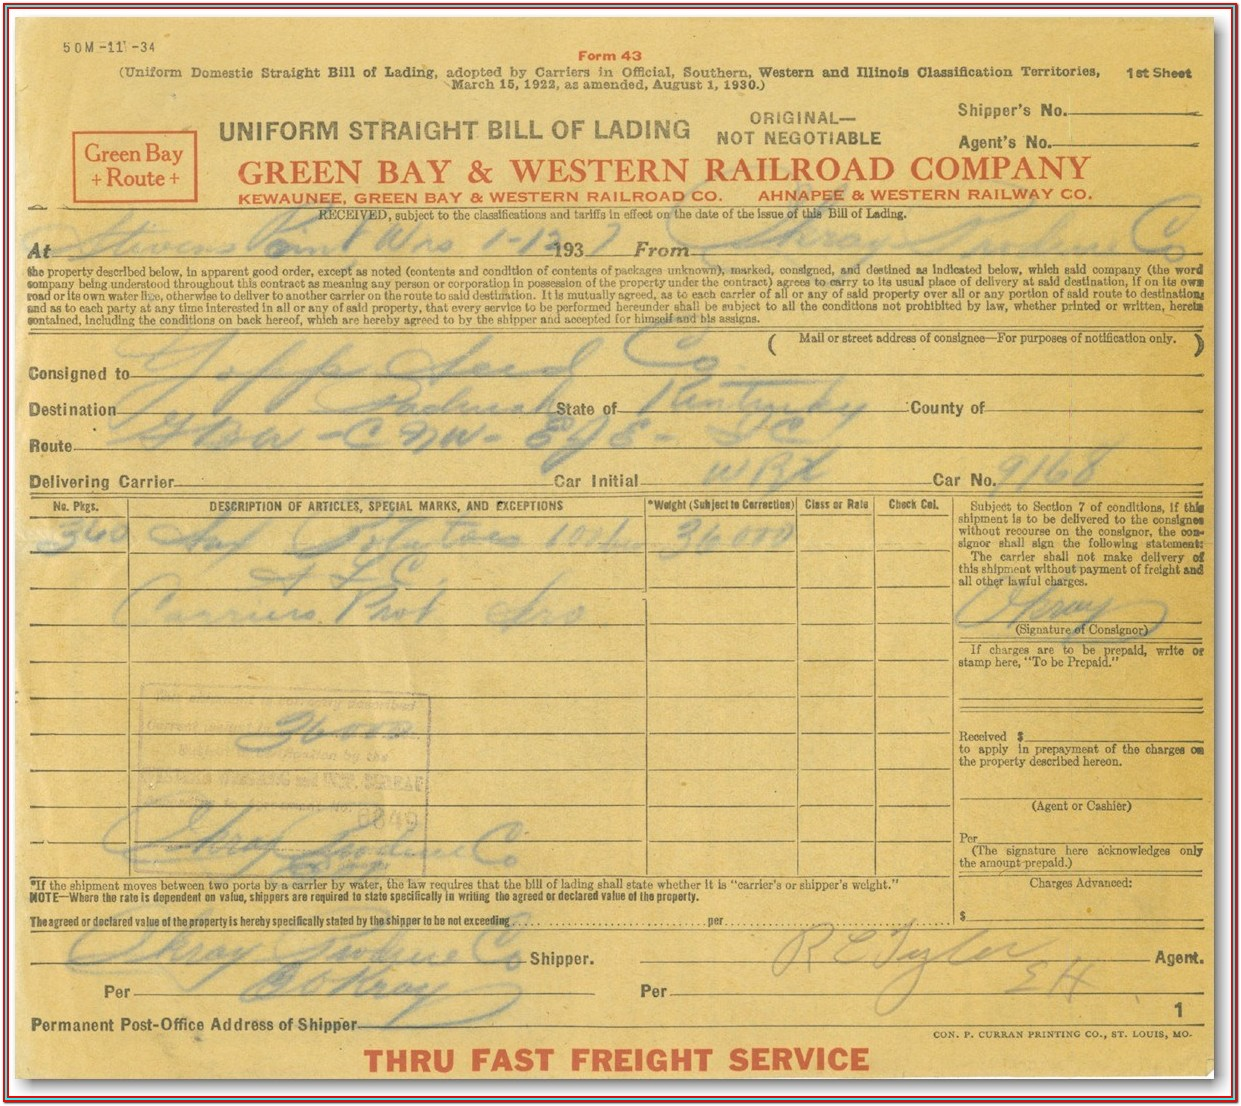 Yellow Freight Bill Of Lading Form